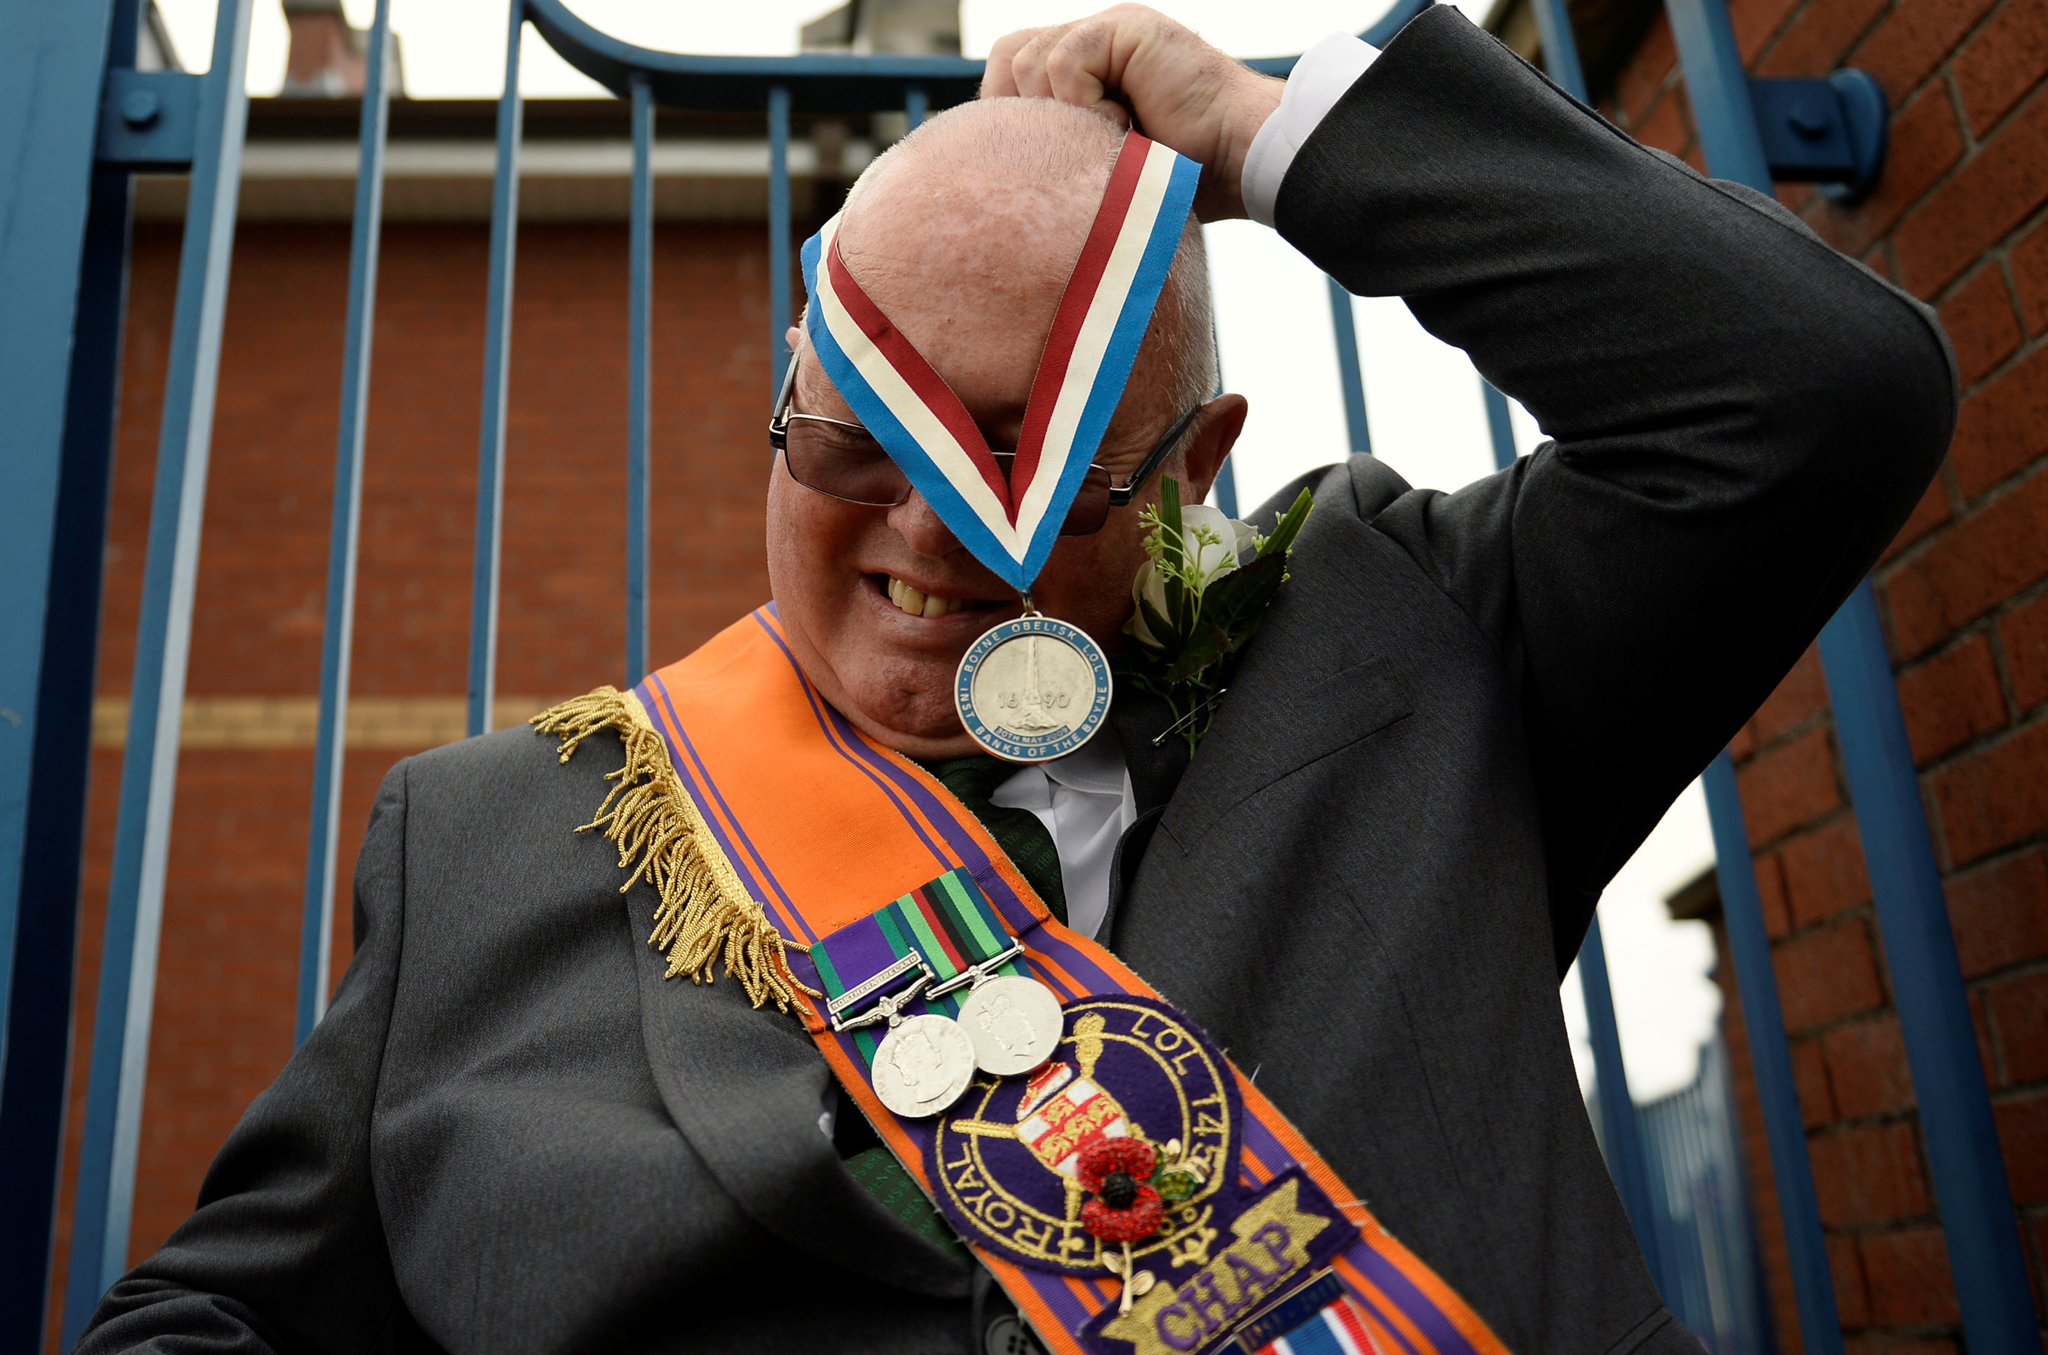 A member of the Twelfth of July Orange Order parade is seen putting on a medal during a march through Crumlin Road in Belfast, Northern Ireland